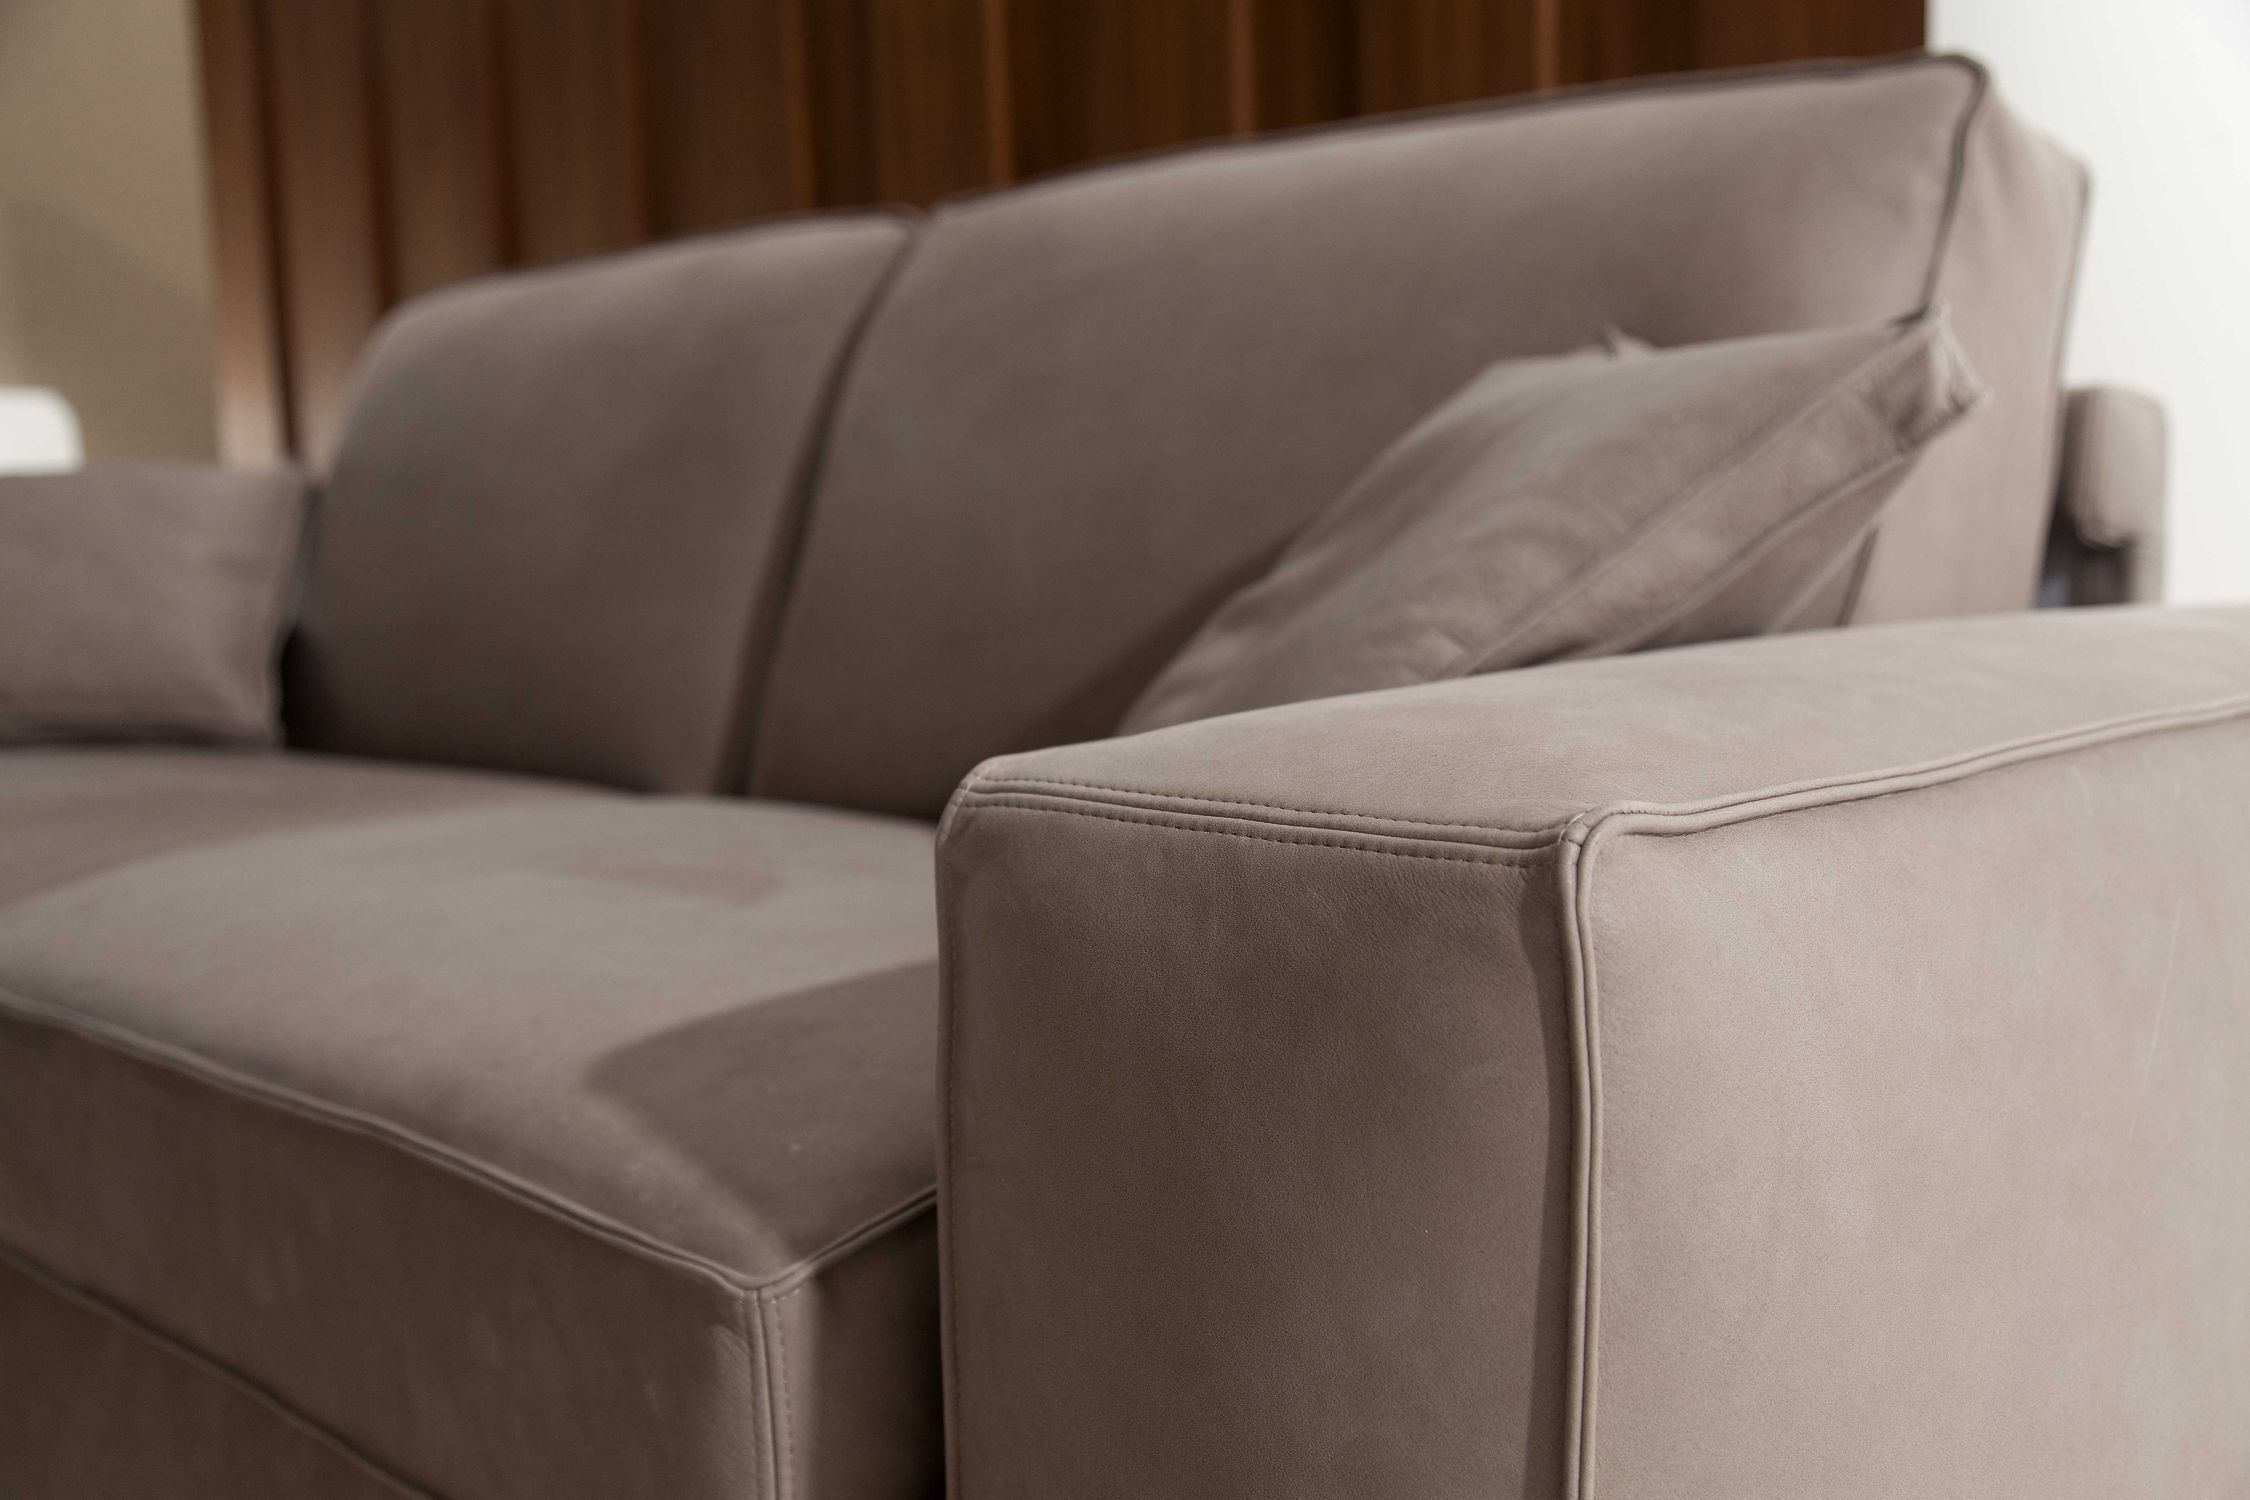 Brilliant Bettsofa Modern Samt Leder Eleven Automatic Sofa Caraccident5 Cool Chair Designs And Ideas Caraccident5Info